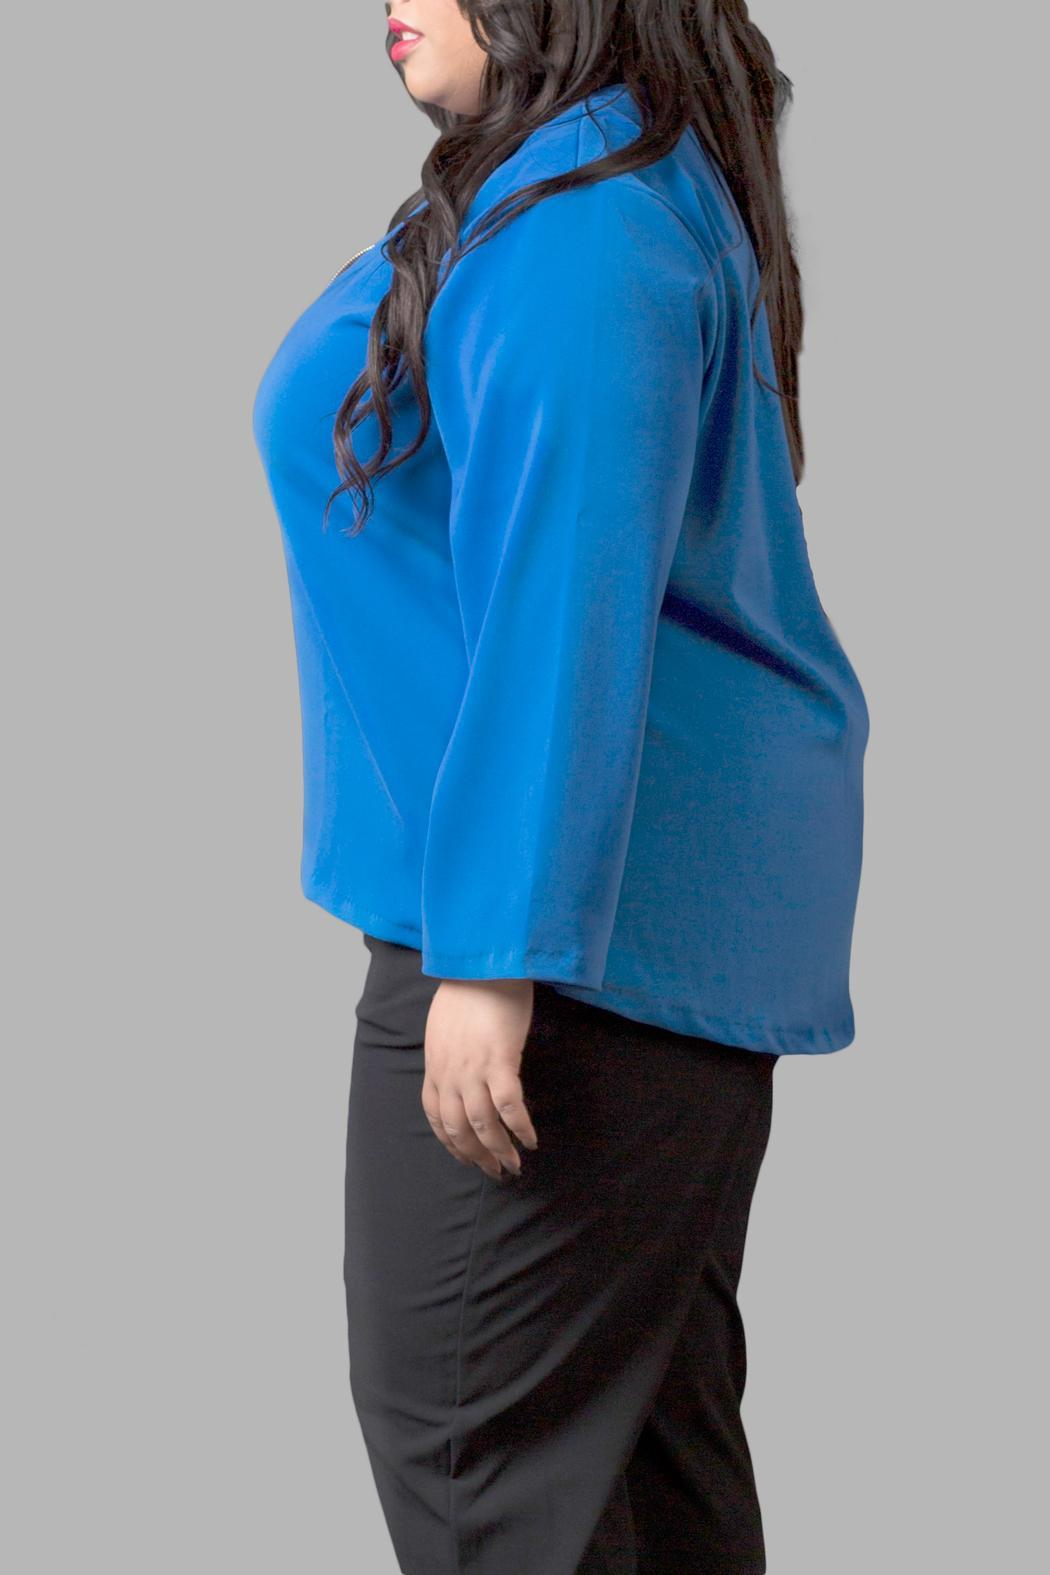 Yona New York Blue Long Sleeve Top - Front Full Image